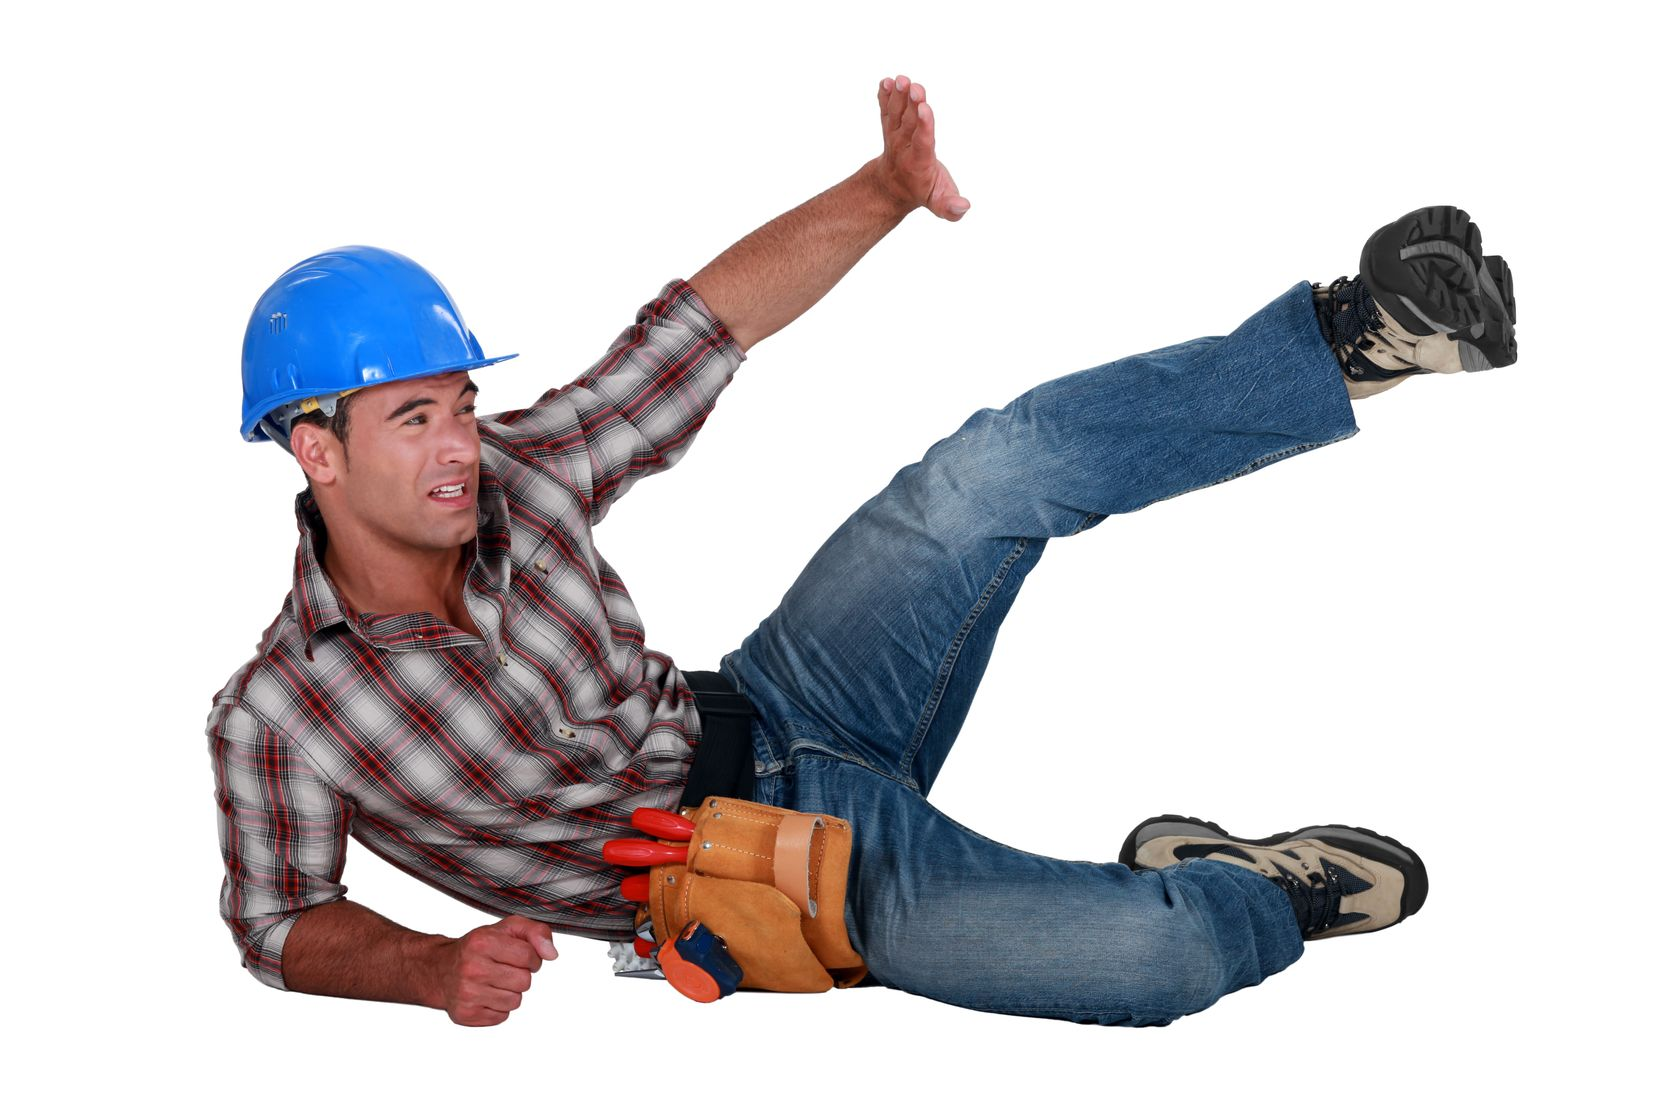 Orange County, CA. Workers Comp Insurance